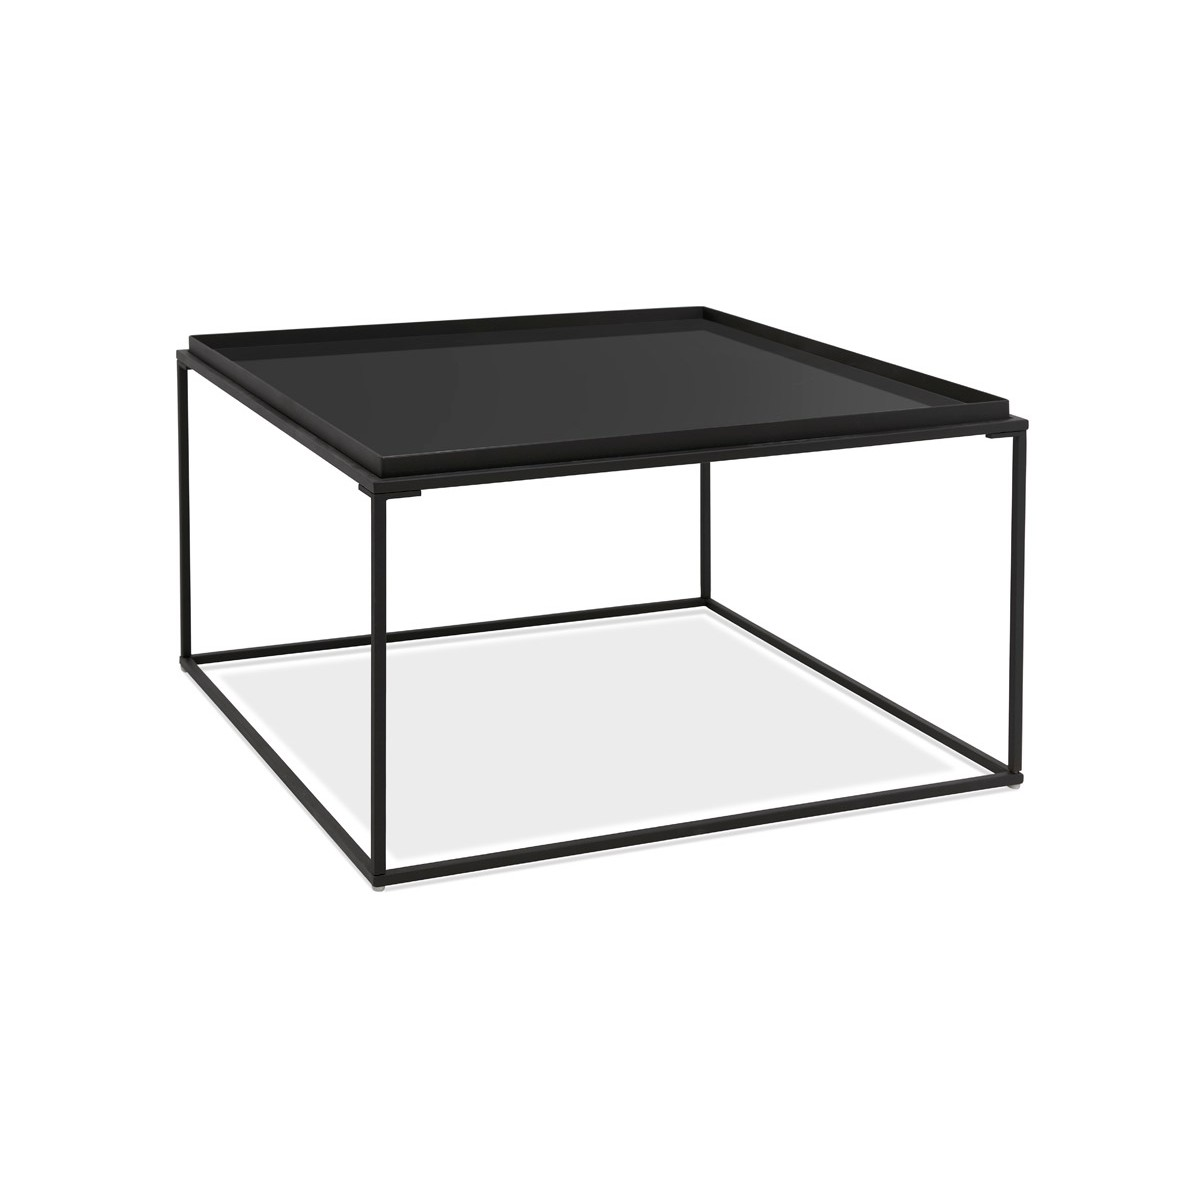 design coffee table in glass and metal